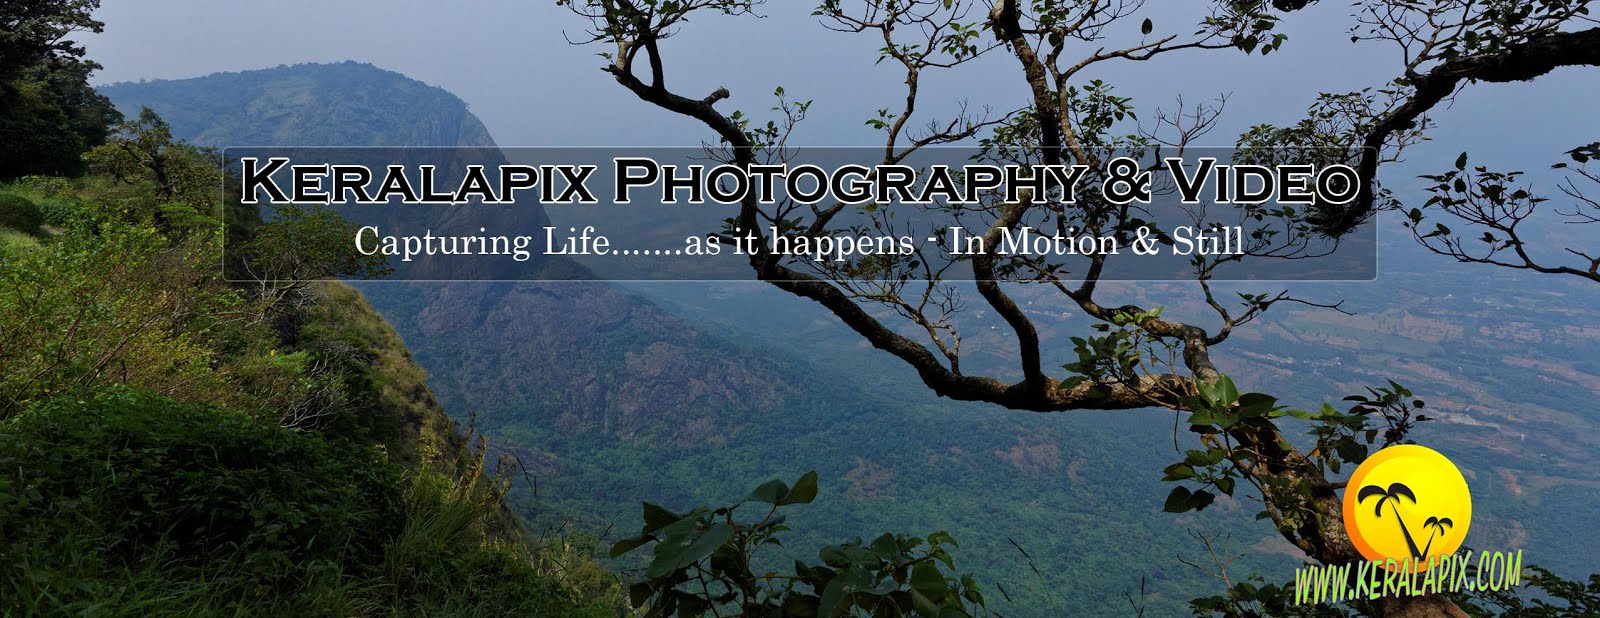 Keralapix Photography and Video